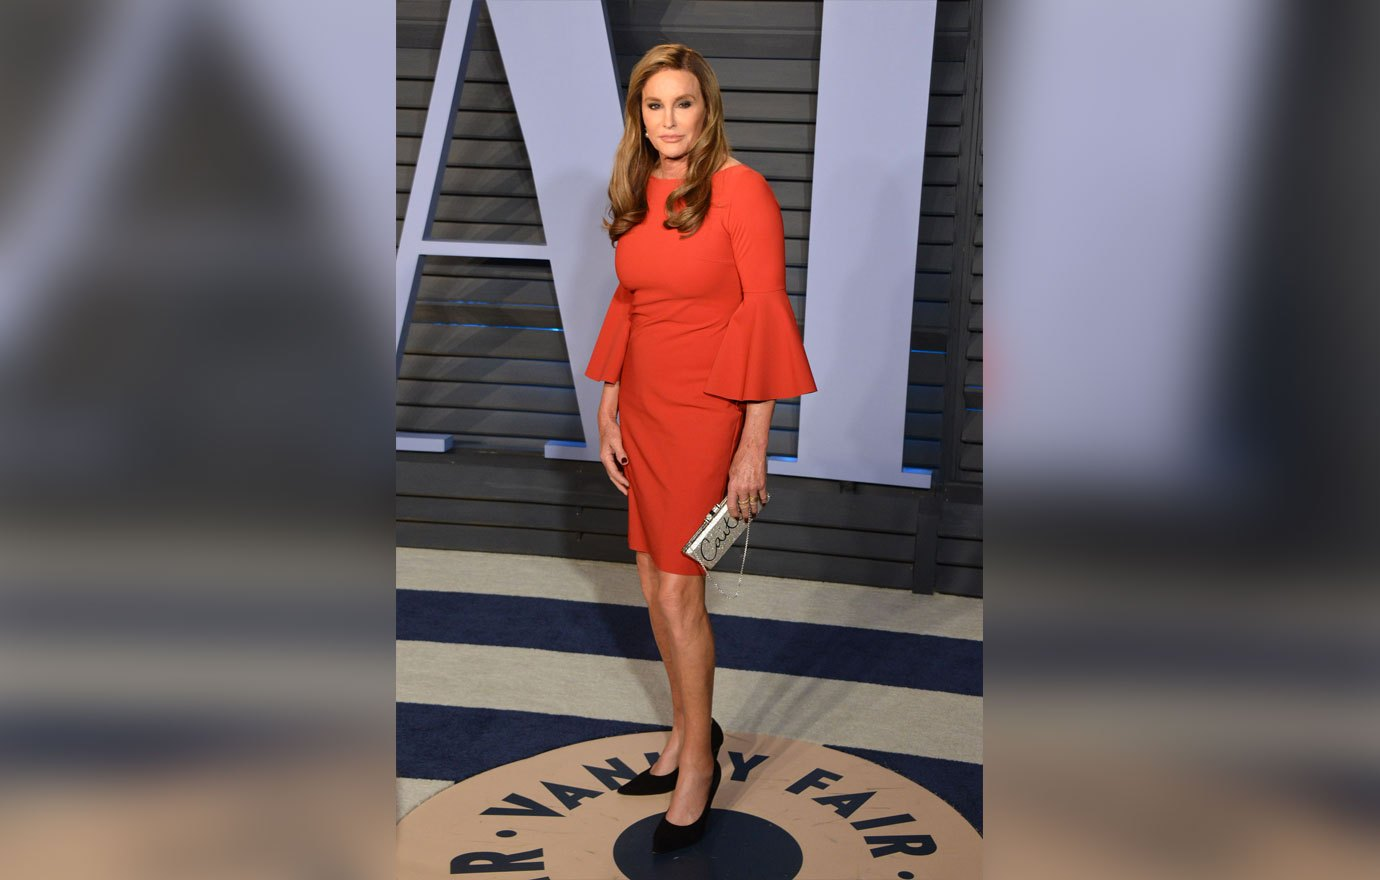 , Beverly Hills, CA -20180304 - The 2018 Vanity Fair Oscar Party -PICTURED: Caitlyn Jenner -PHOTO by: Tony DiMaio/startraksphoto.com This is an editorial, rights-managed image. Please contact Startraks Photo for licensing fee and rights information at sales@startraksphoto.com or call +1 212 414 9464 This image may not be published in any way that is, or might be deemed to be, defamatory, libelous, pornographic, or obscene. Please consult our sales department for any clarification needed prior to publication and use. Startraks Photo reserves the right to pursue unauthorized users of this material. If you are in violation of our intellectual property rights or copyright you may be liable for damages, loss of income, any profits you derive from the unauthorized use of this material and, where appropriate, the cost of collection and/or any statutory damages awarded